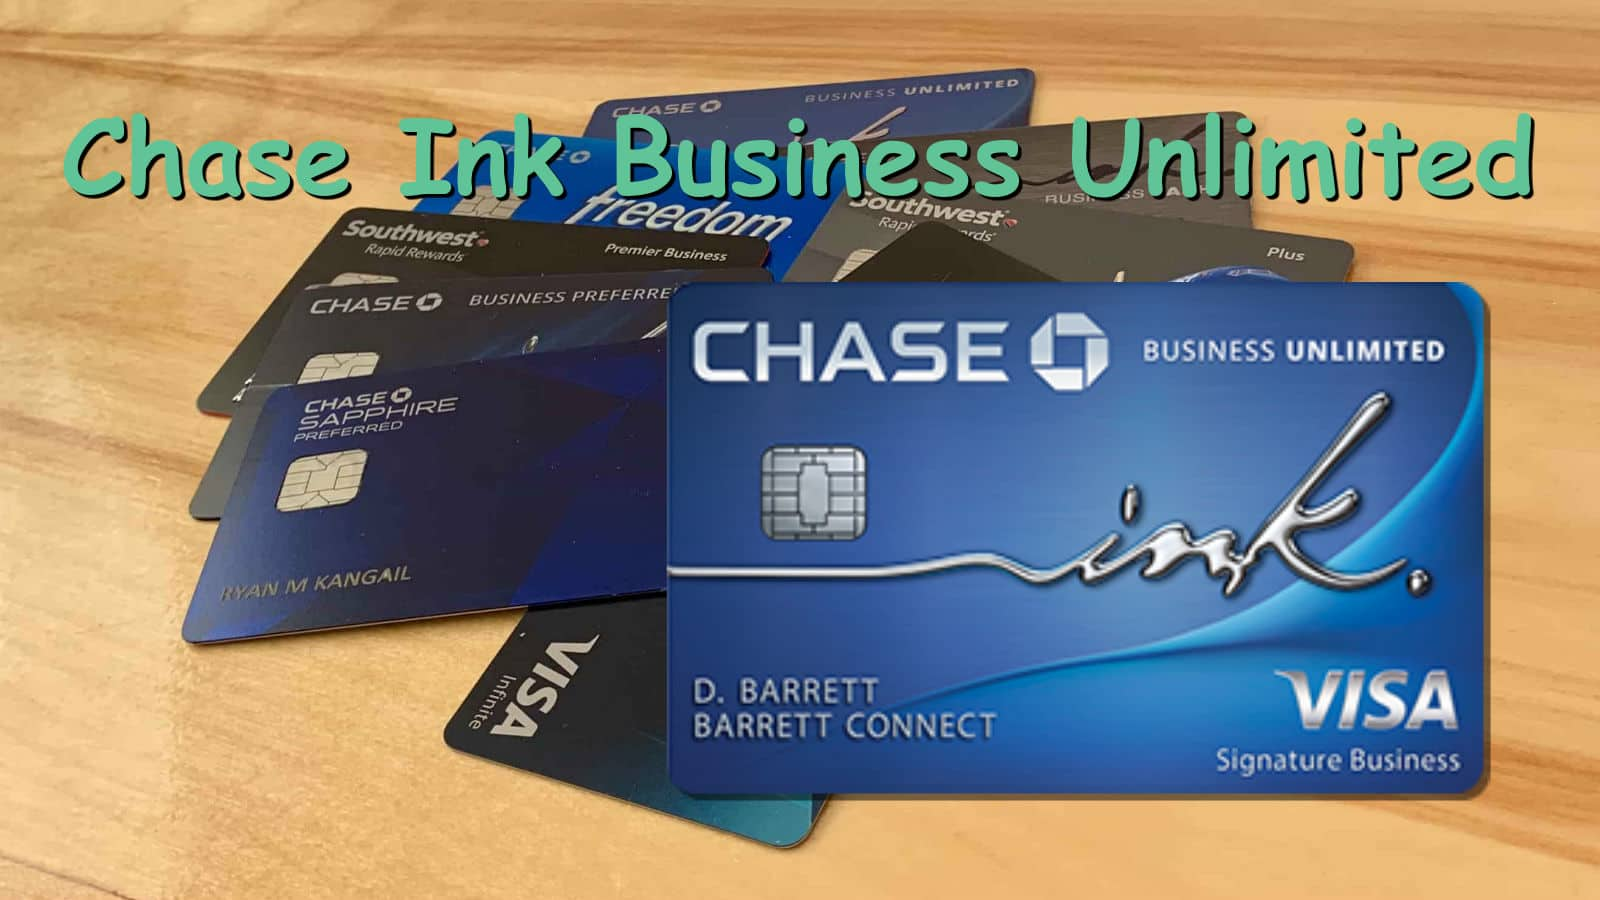 Chase Ink Business Unlimited Review: 13.13% On All Business